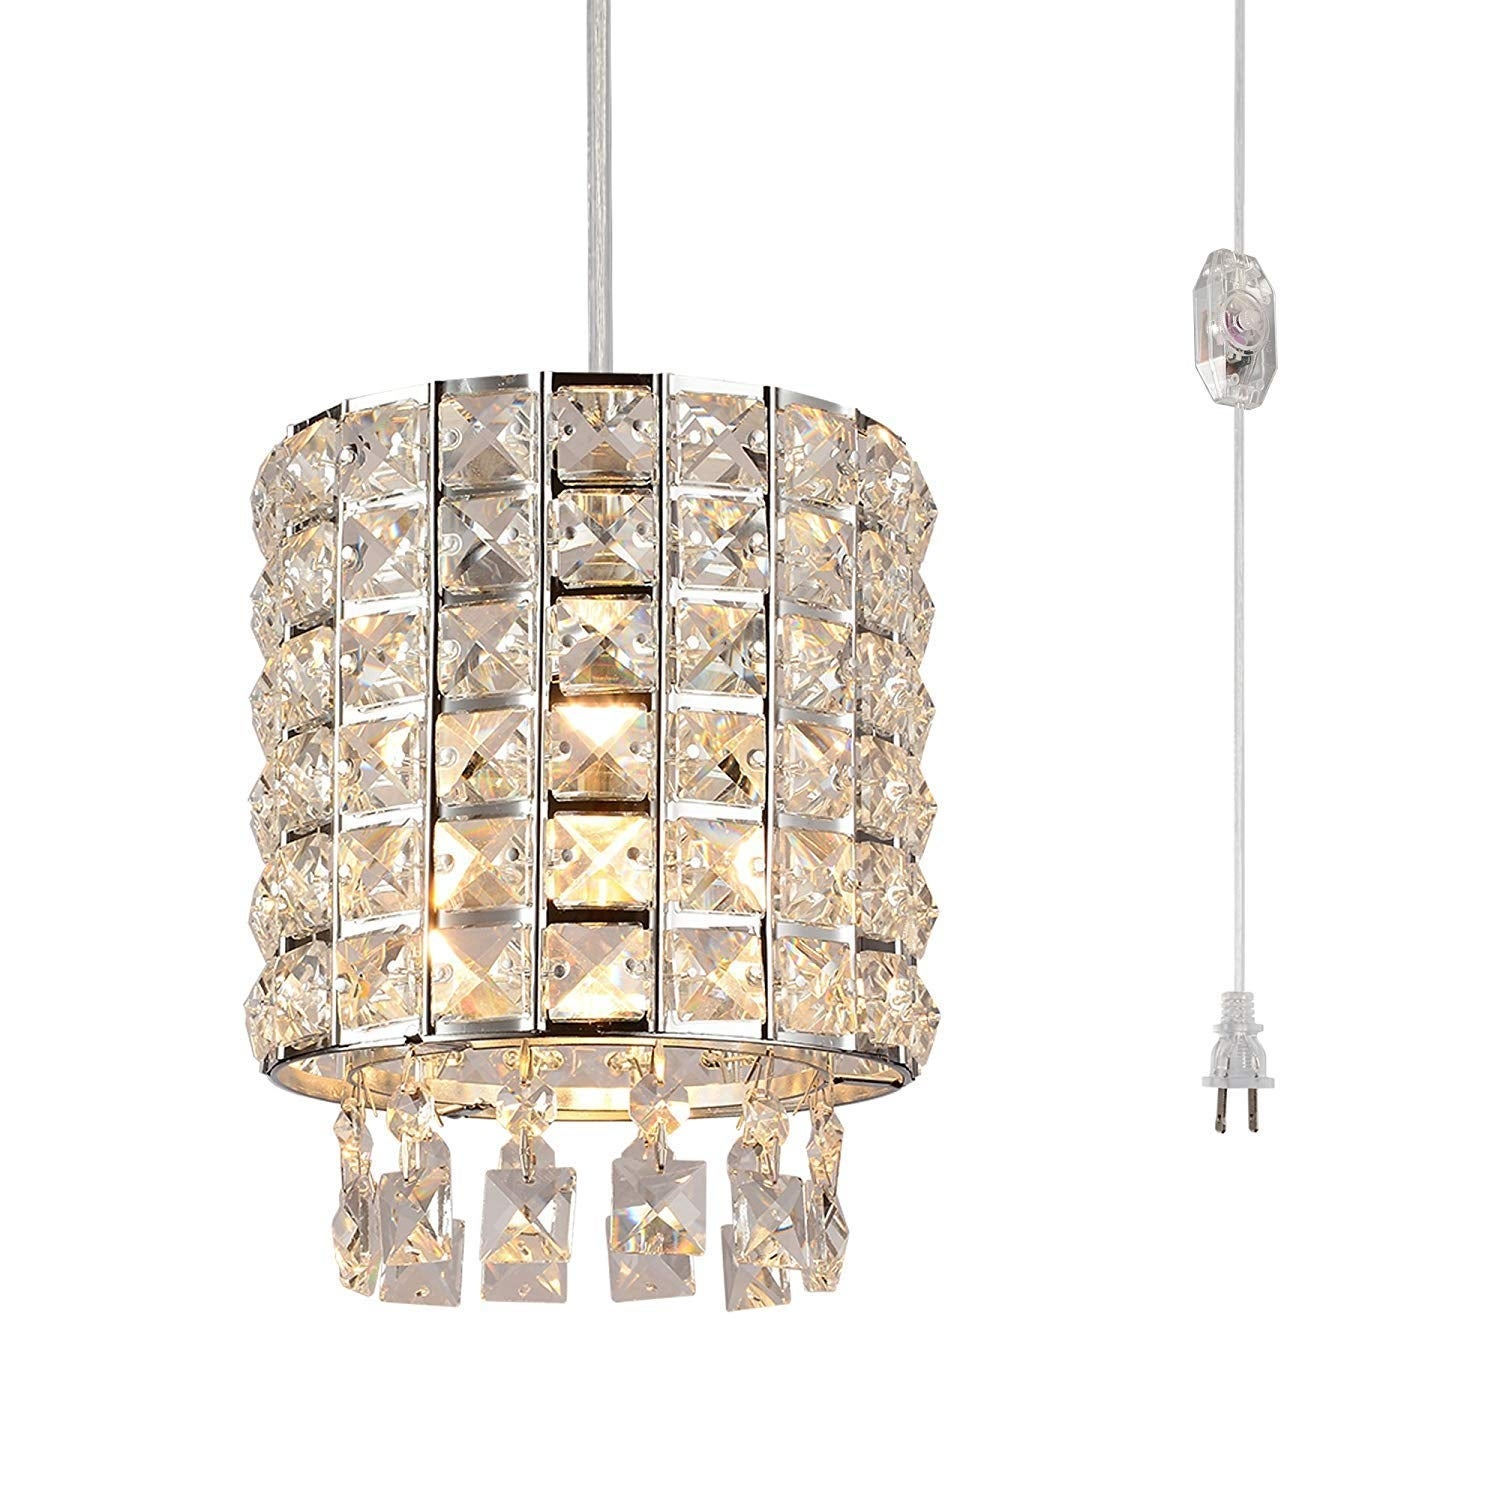 Modern Swag Crystal Dimmer Switch Plug In Pendant Light Overstock 27554294